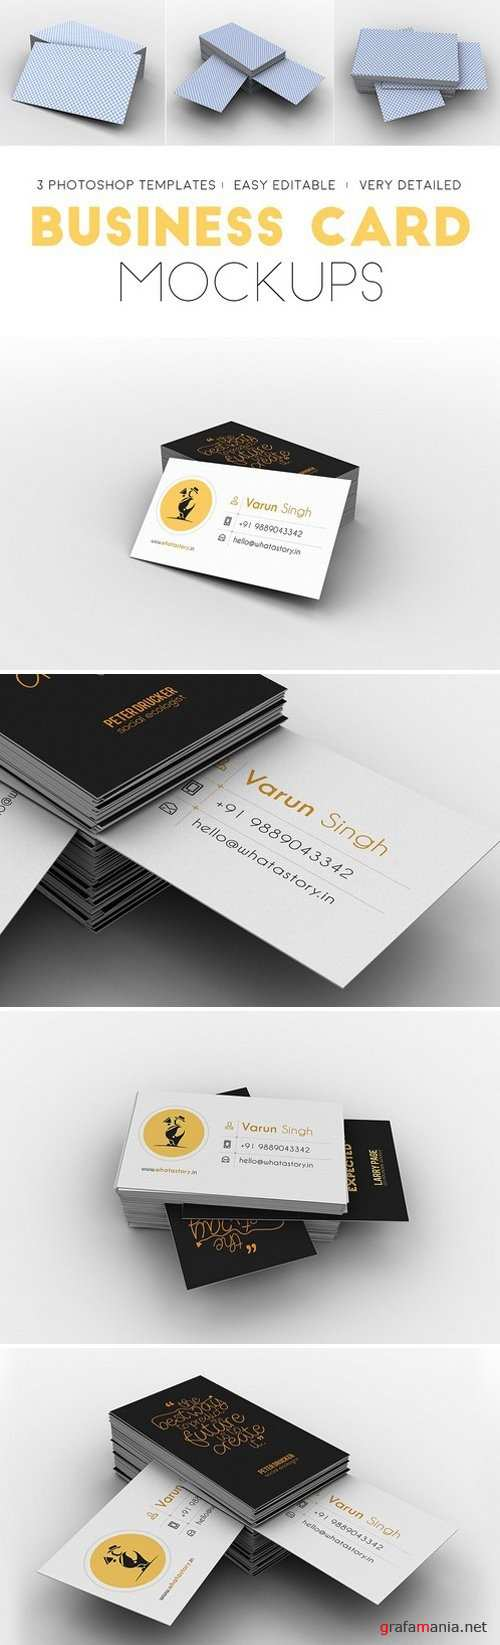 Professional Business Card Mockups 2176253